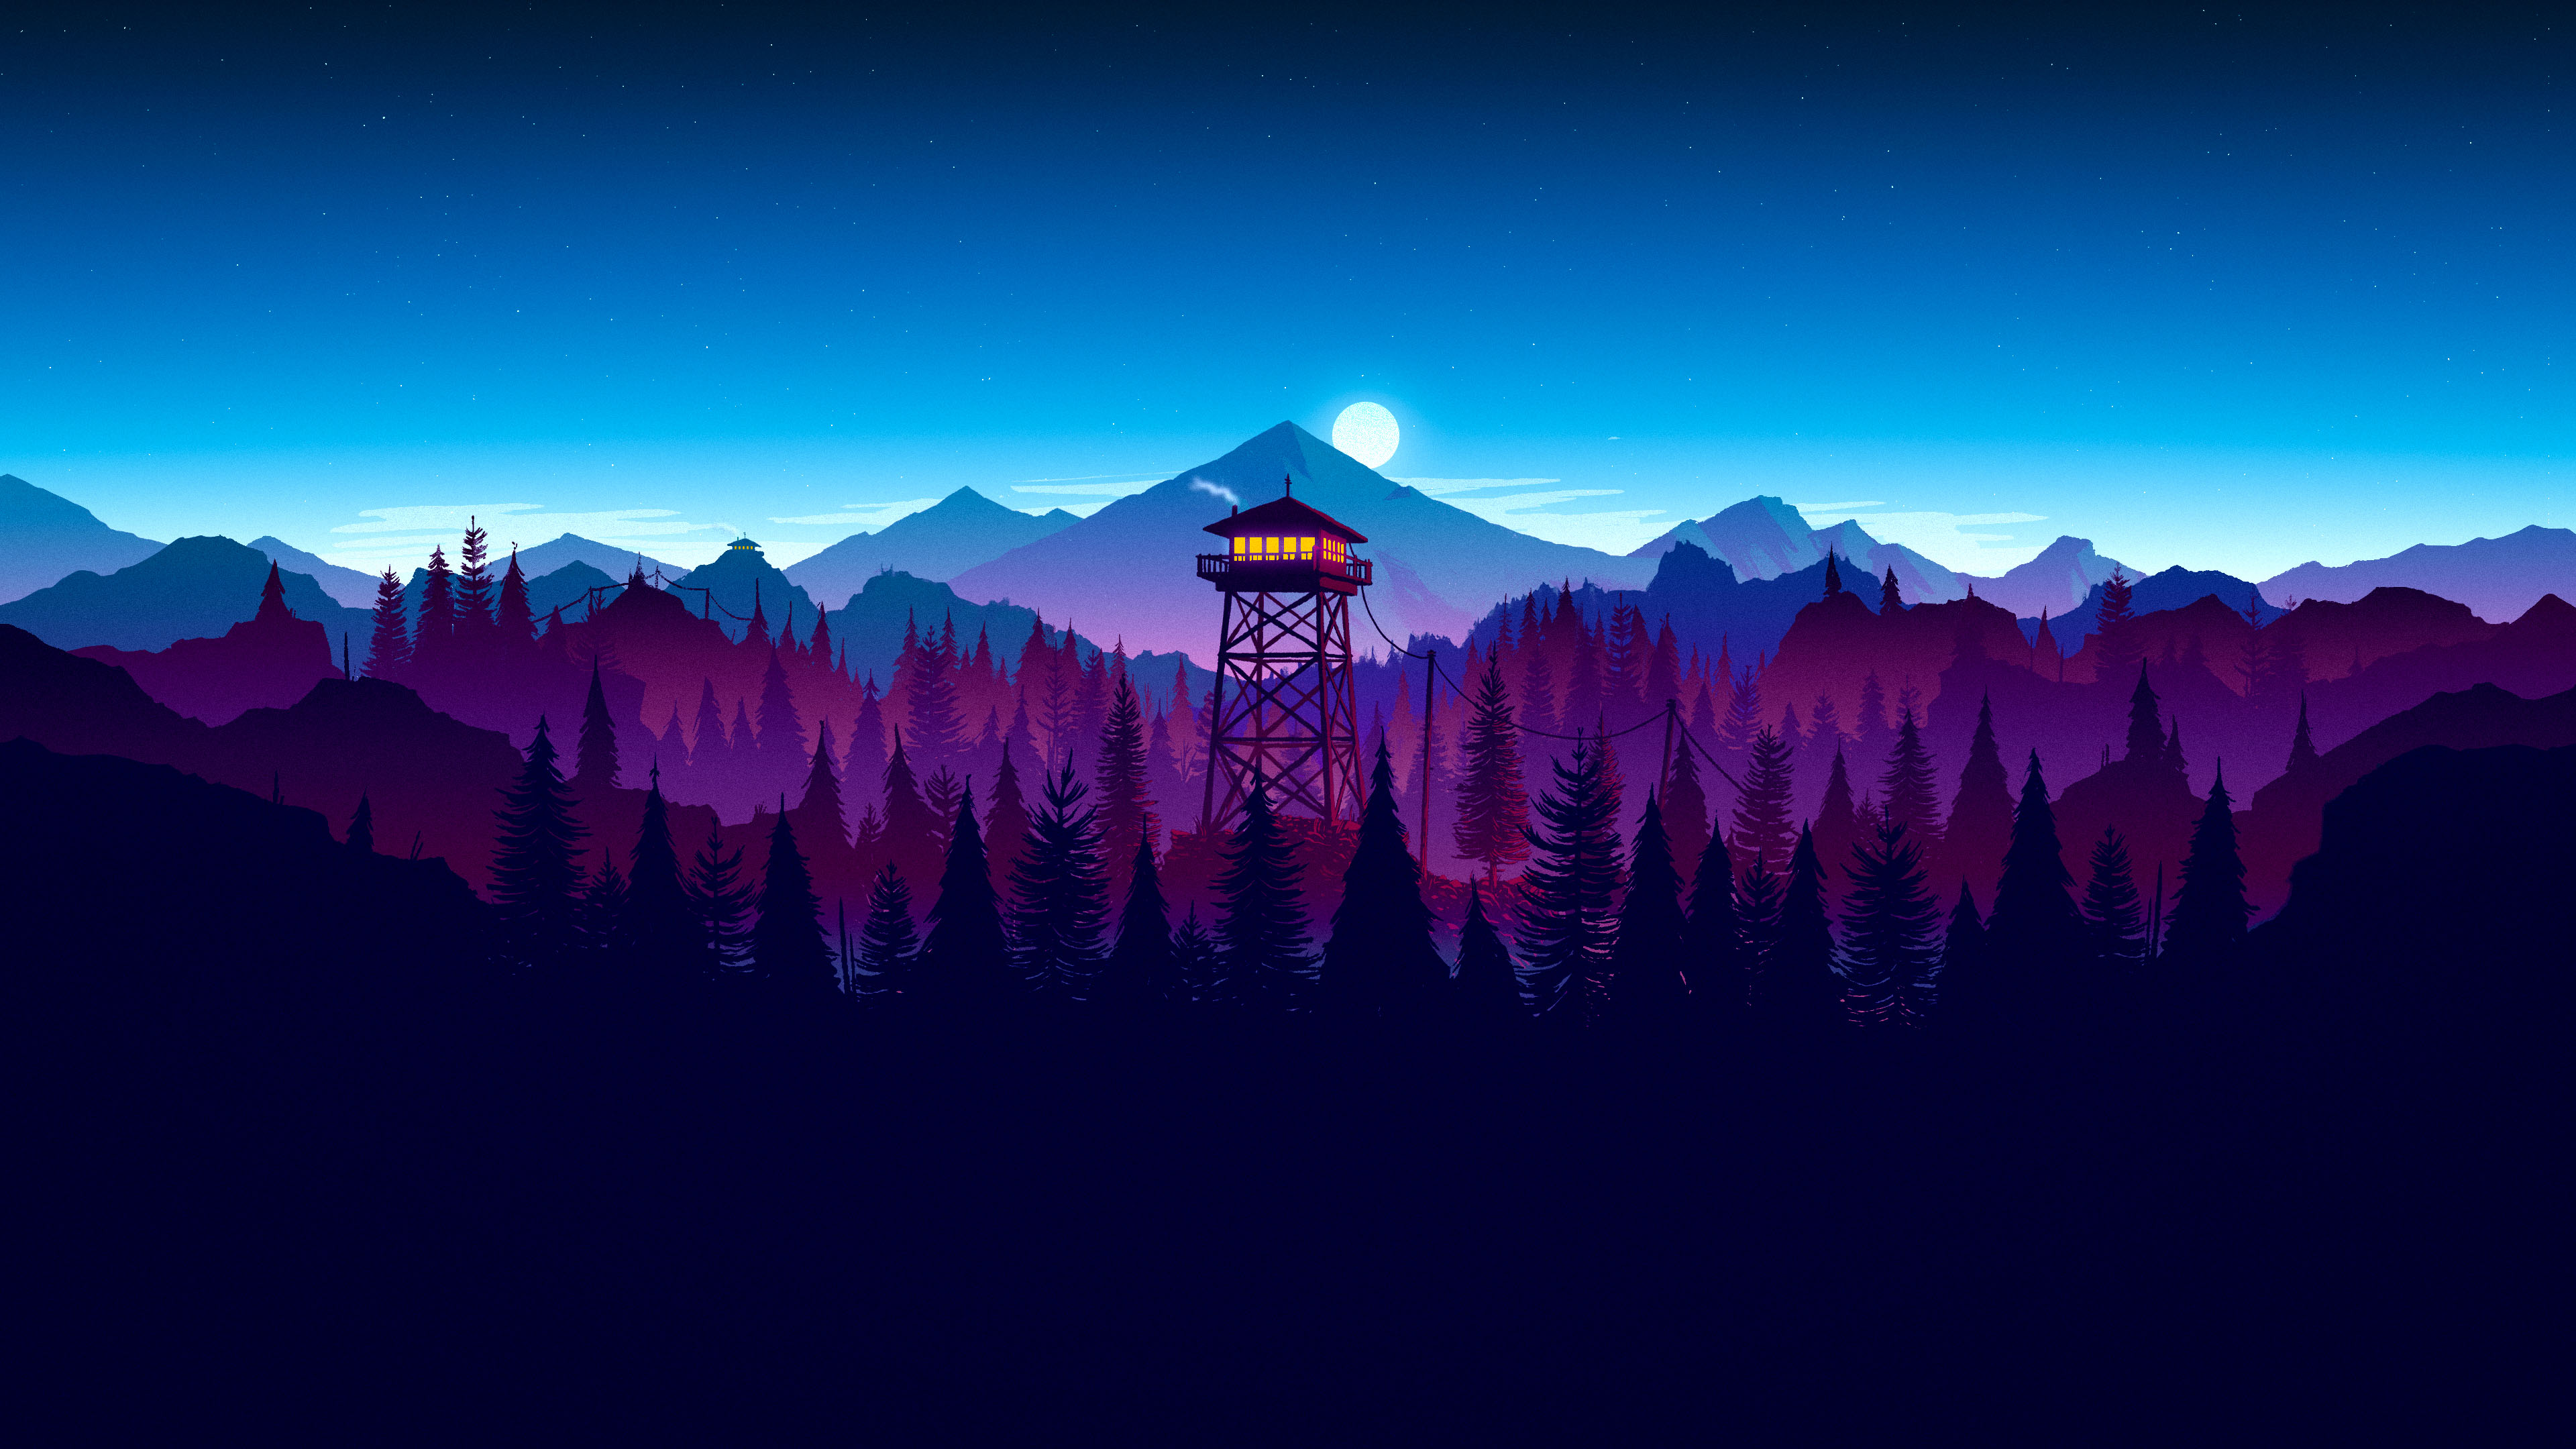 firewatch 4k widescreen wallpaper 412